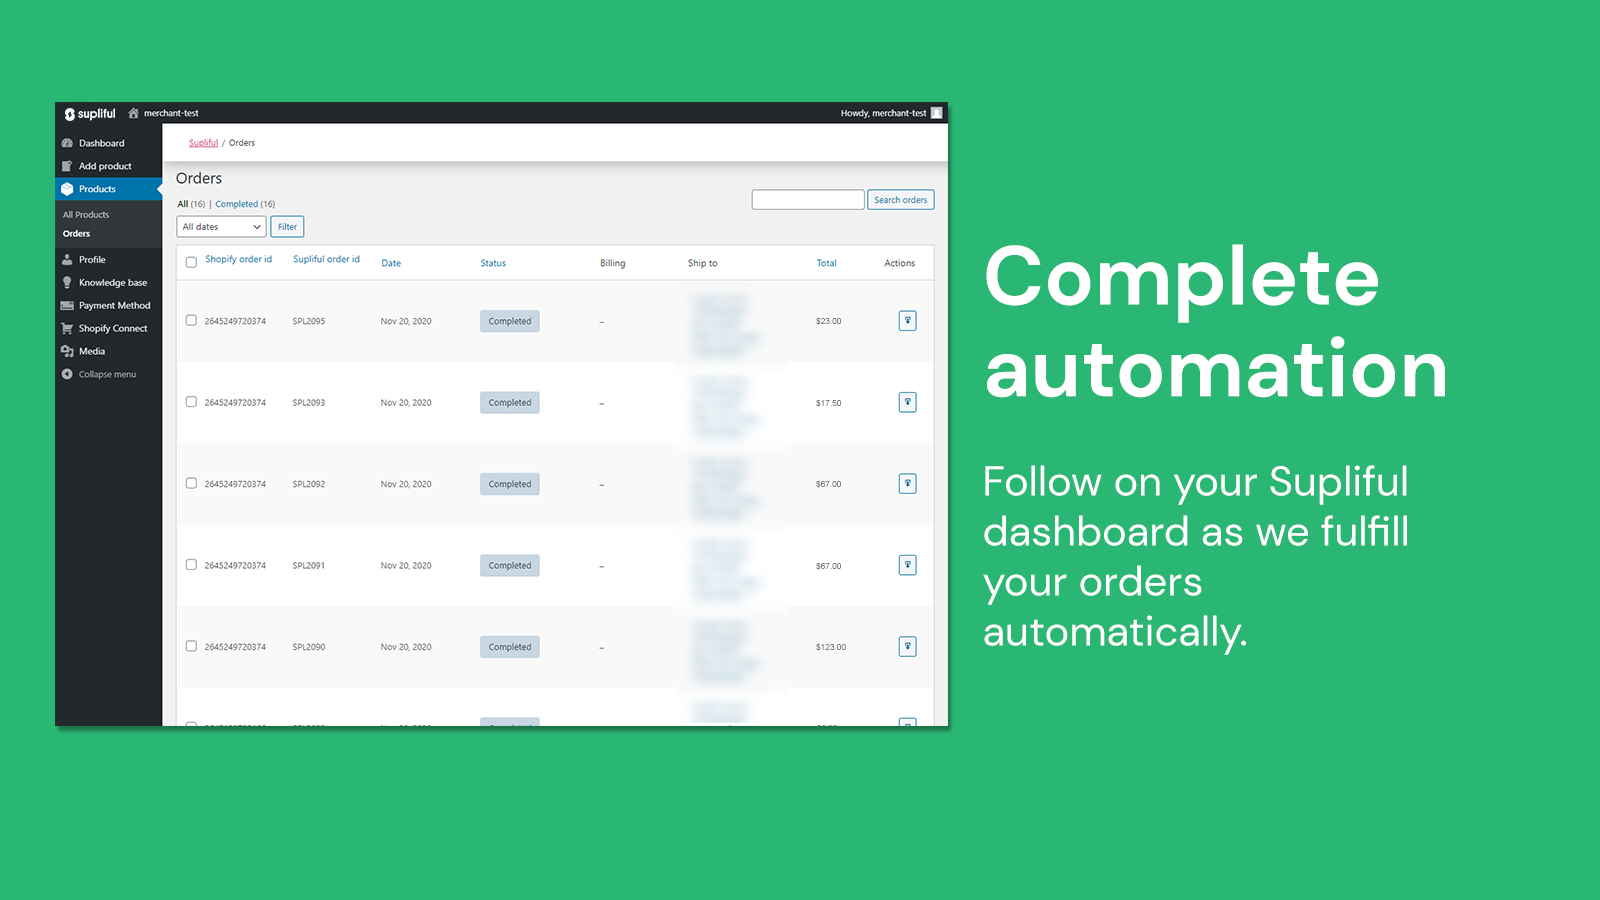 Watch as we import and fullfill your orders automatically